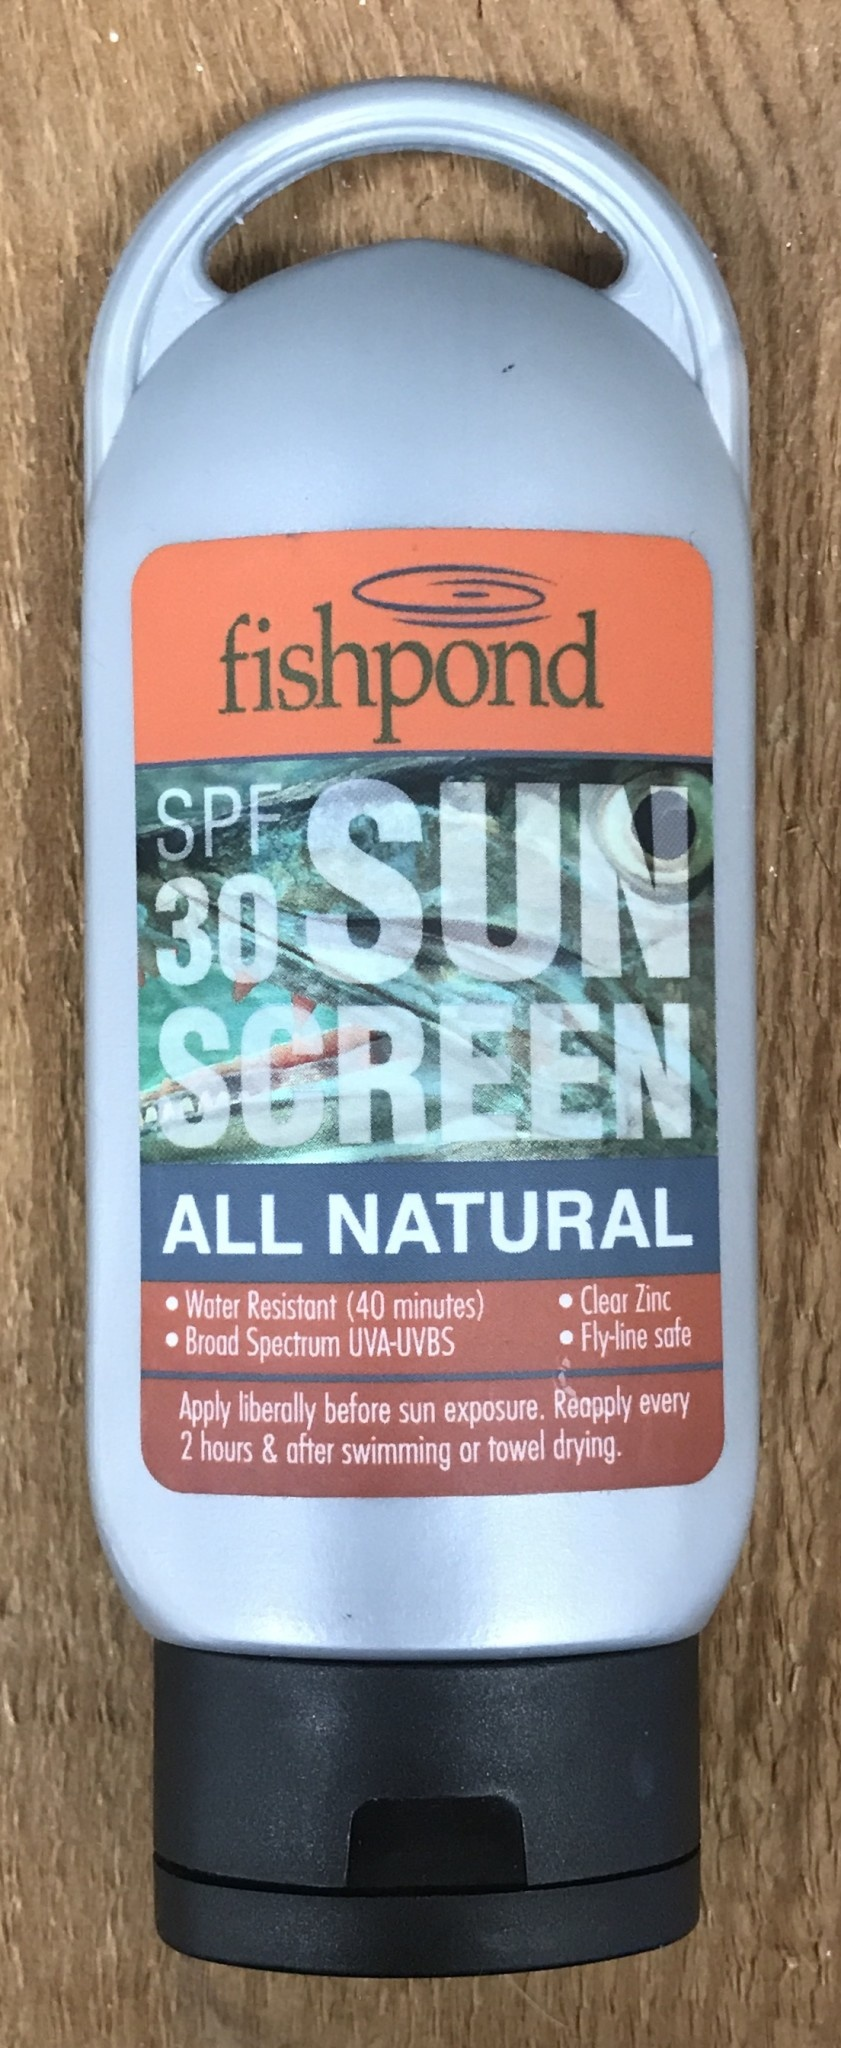 Fishpond All Natural Sunscreen